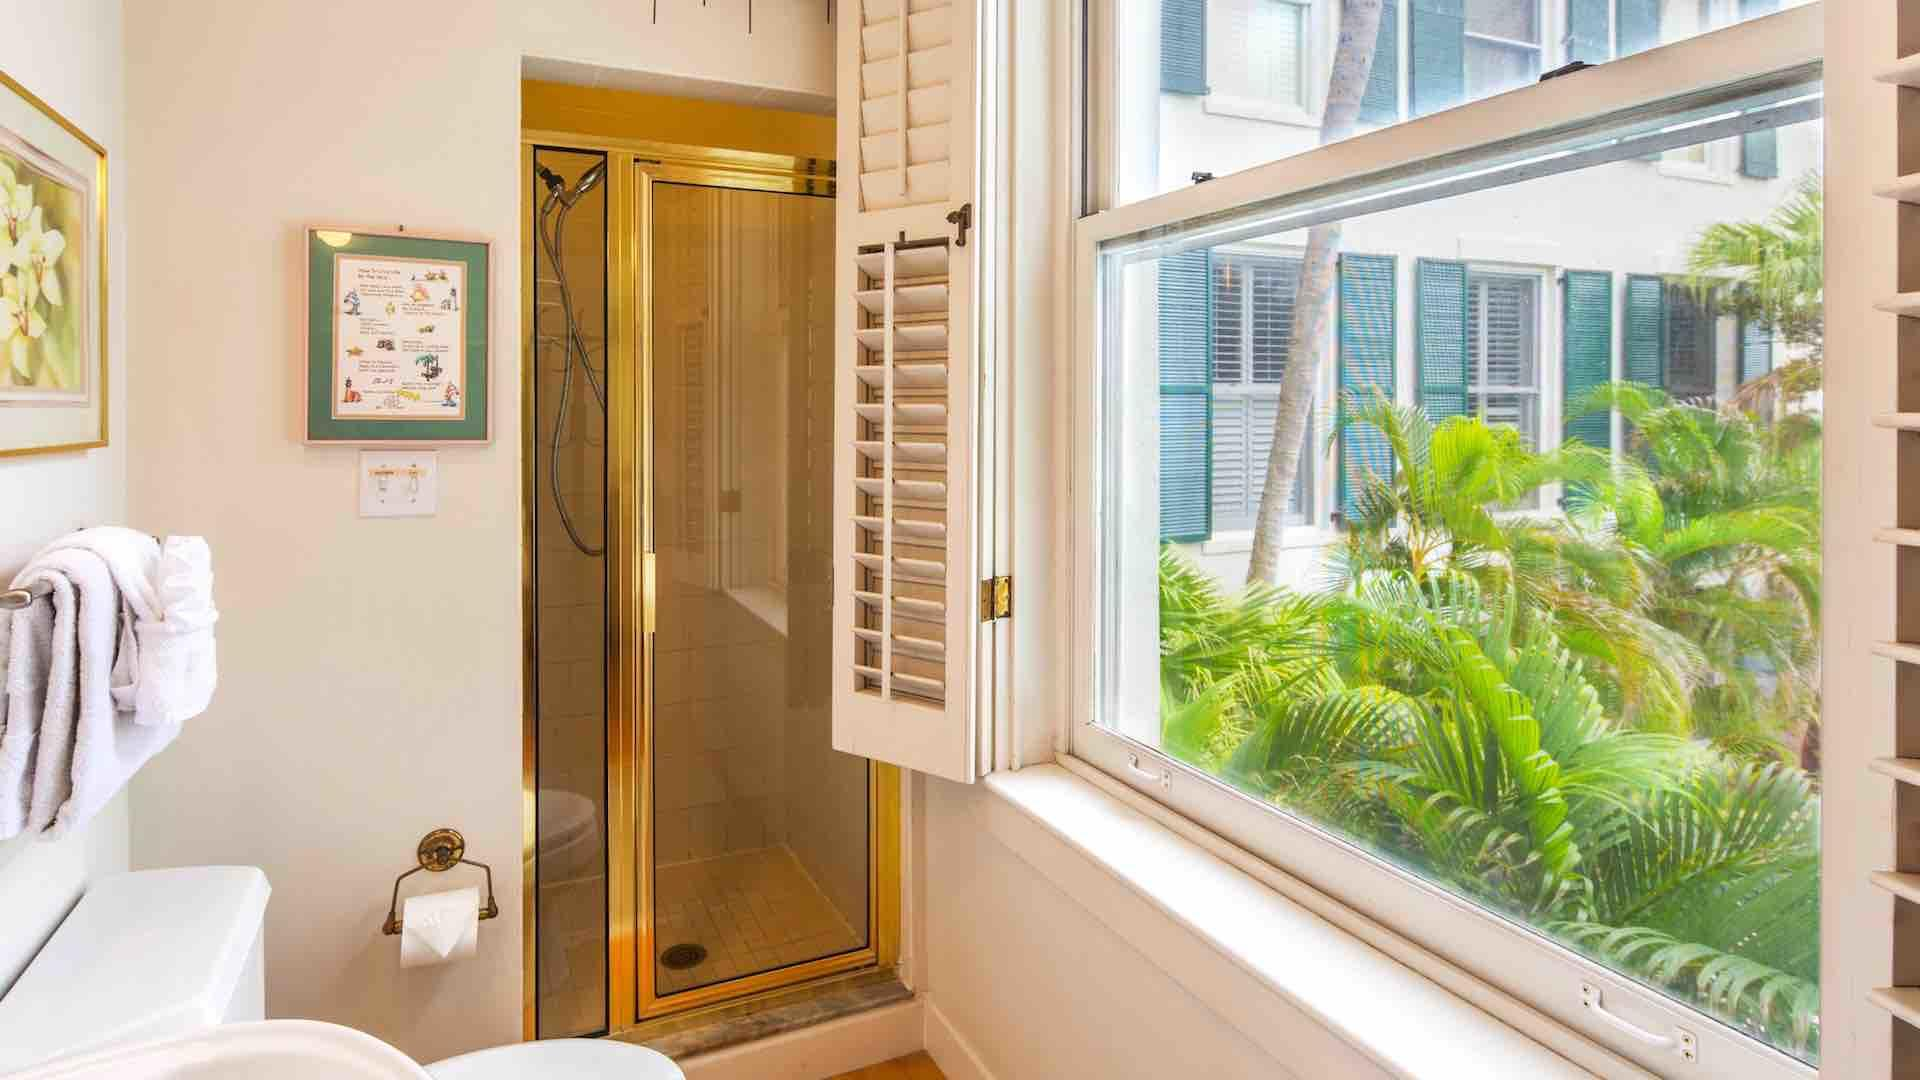 The second bathroom is located in the hall and has a walk-in shower...